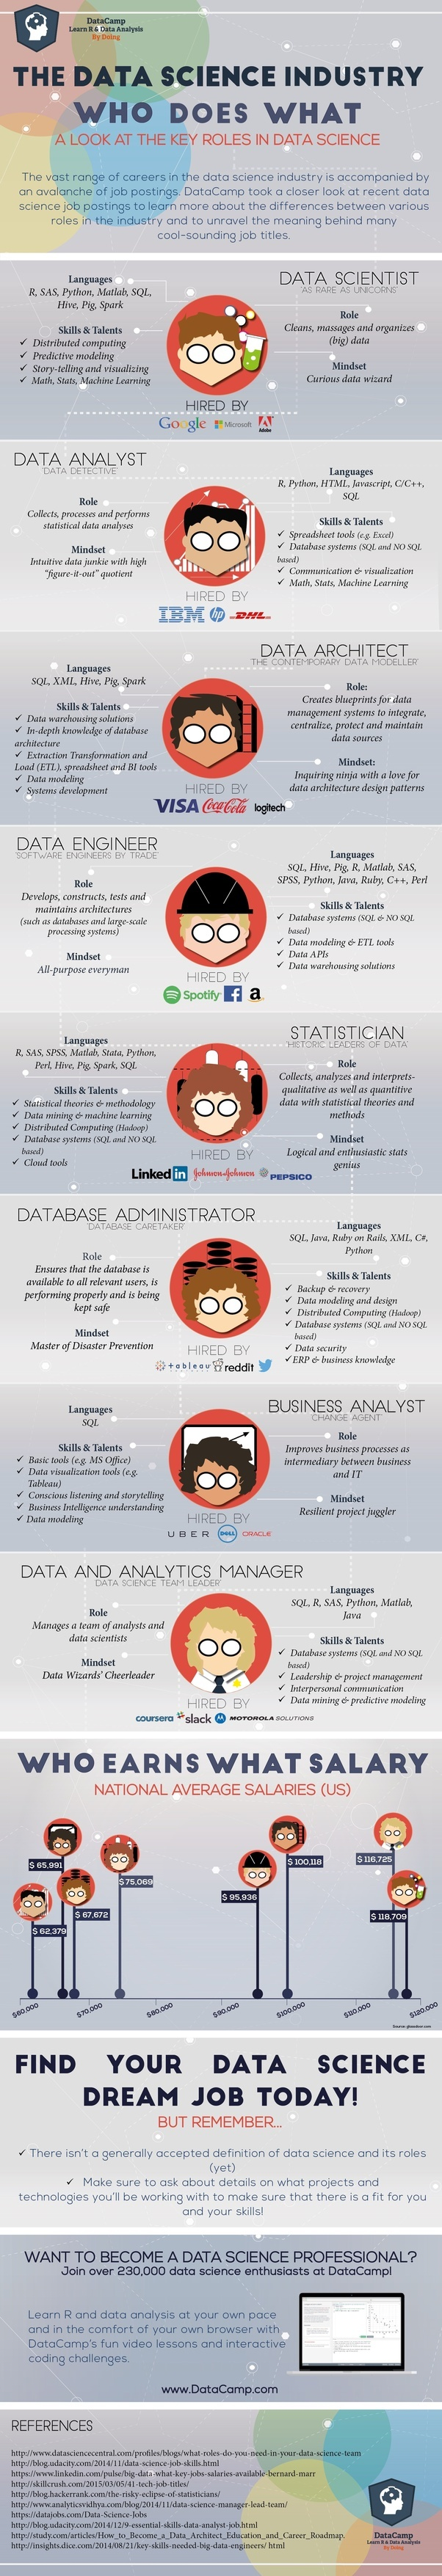 The career opportunities in data science big